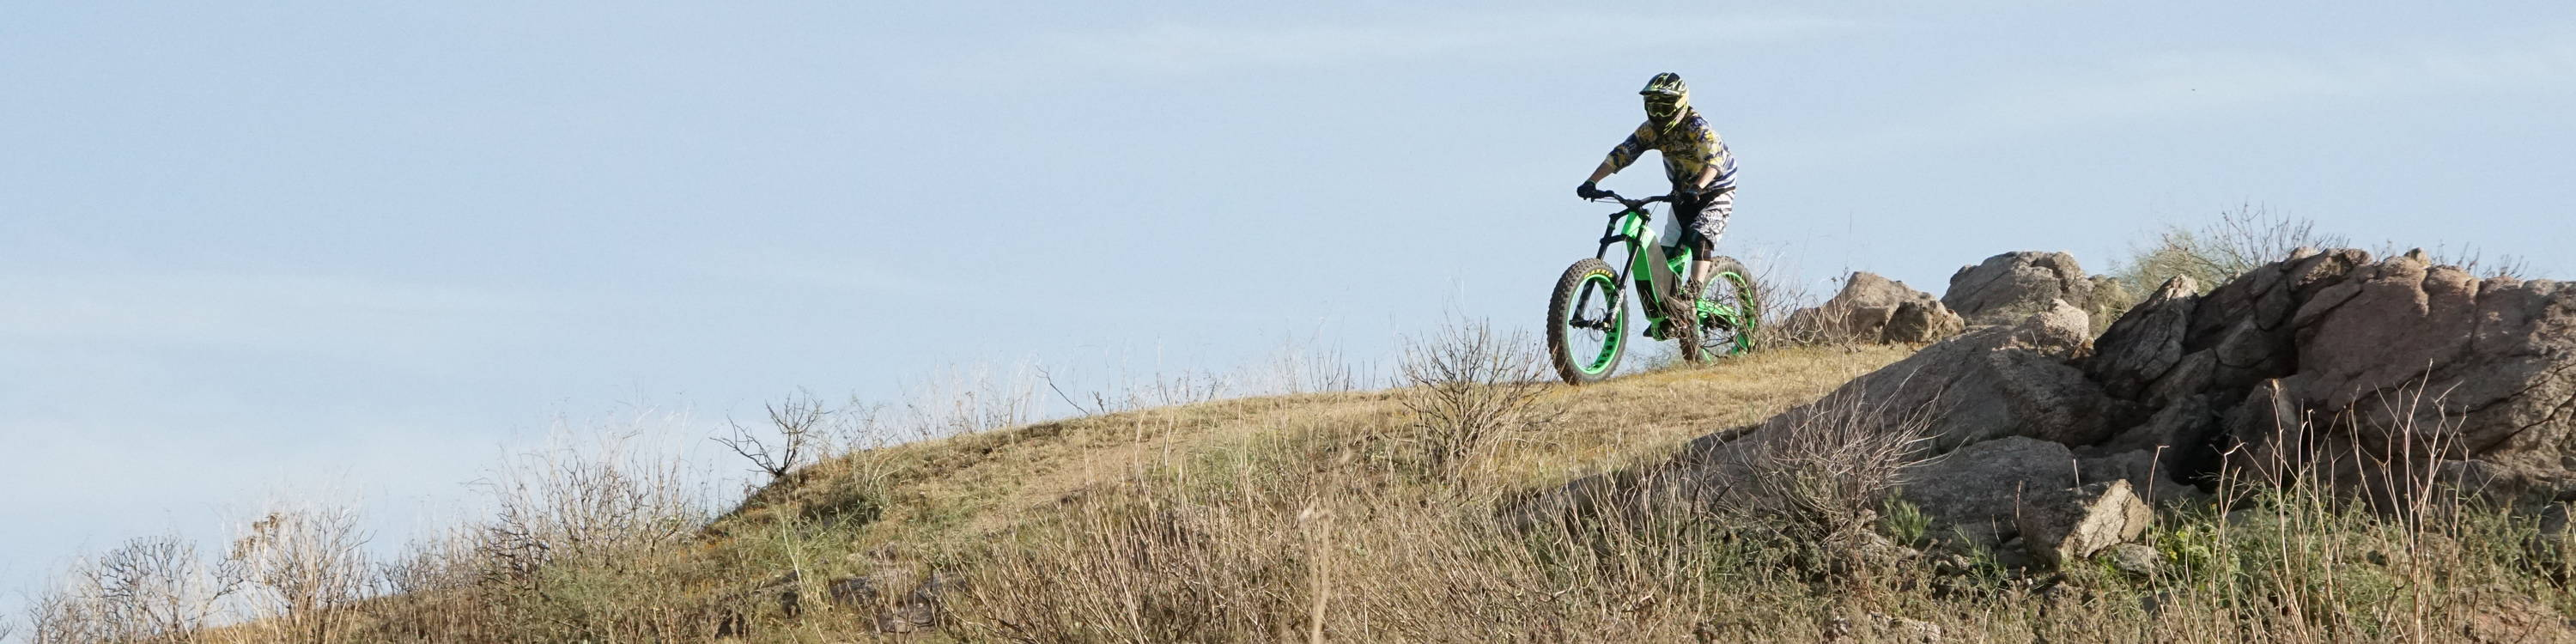 387cac159c4 Revolution AT: The Ultimate Exploration Electric Bike | Hi Power Cycles